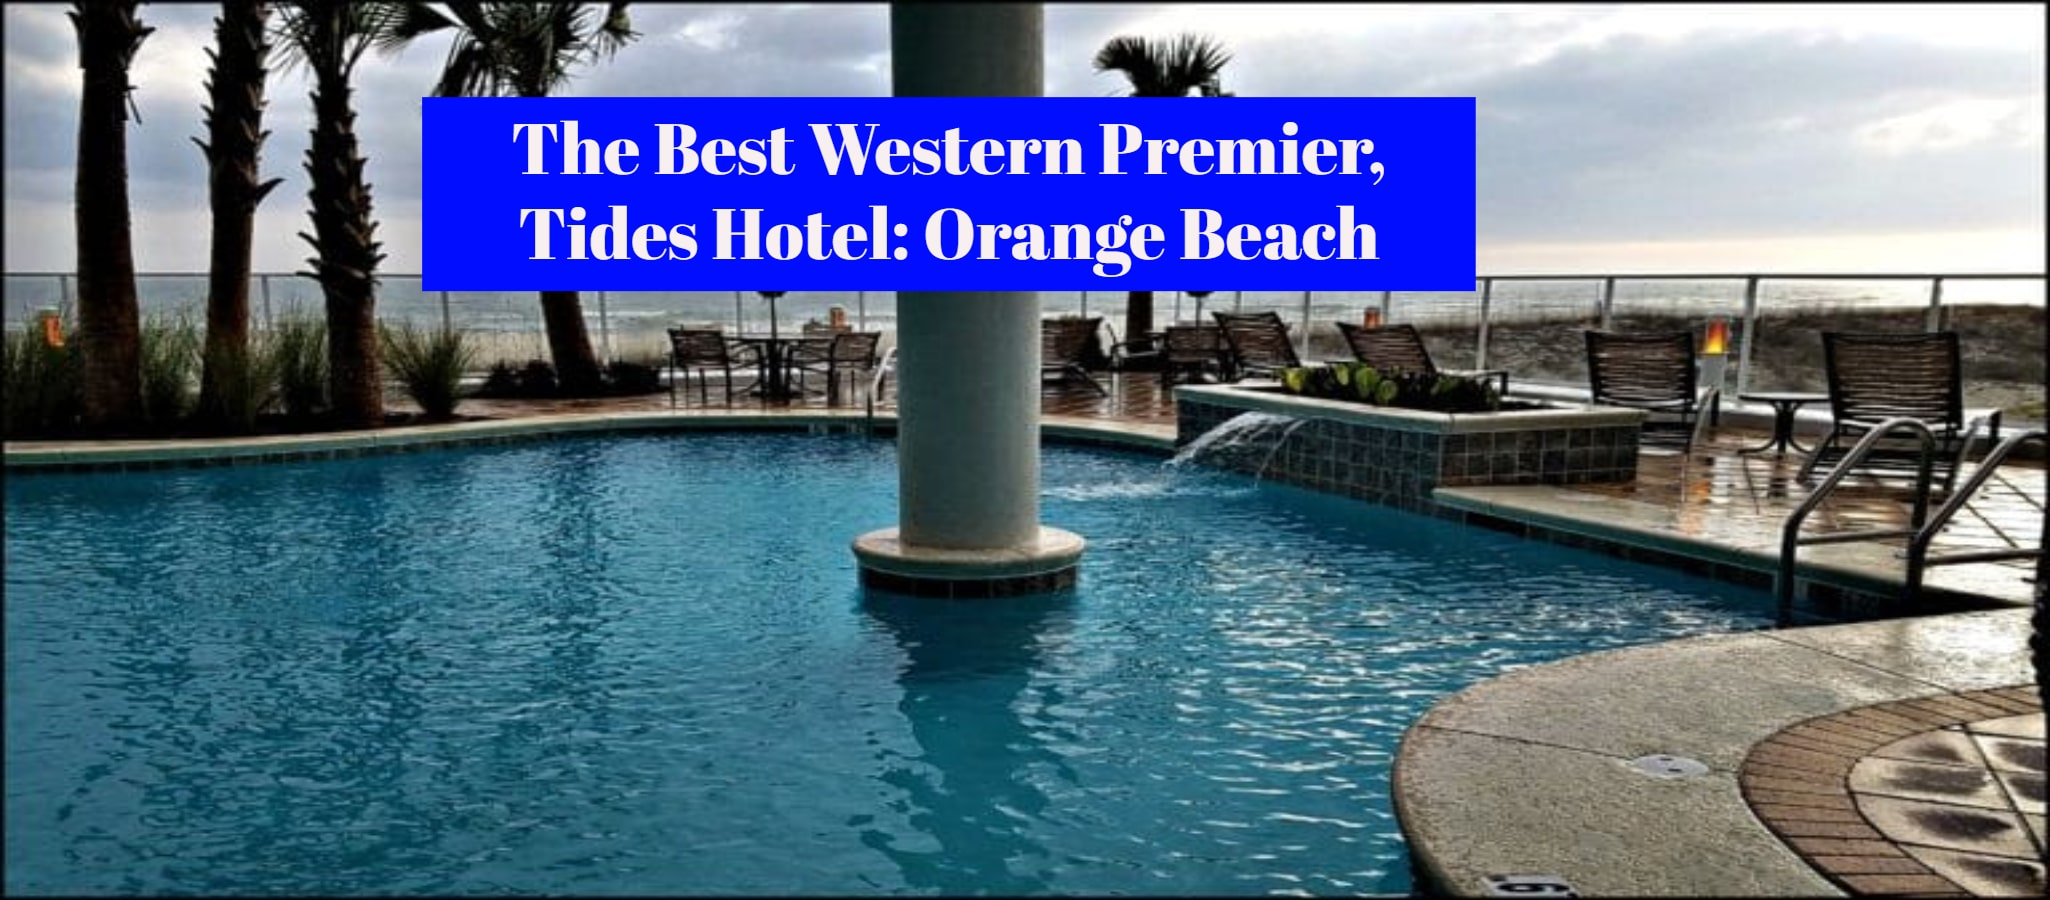 The Best Western Premier, Tides Hotel Orange Beach, Alabama